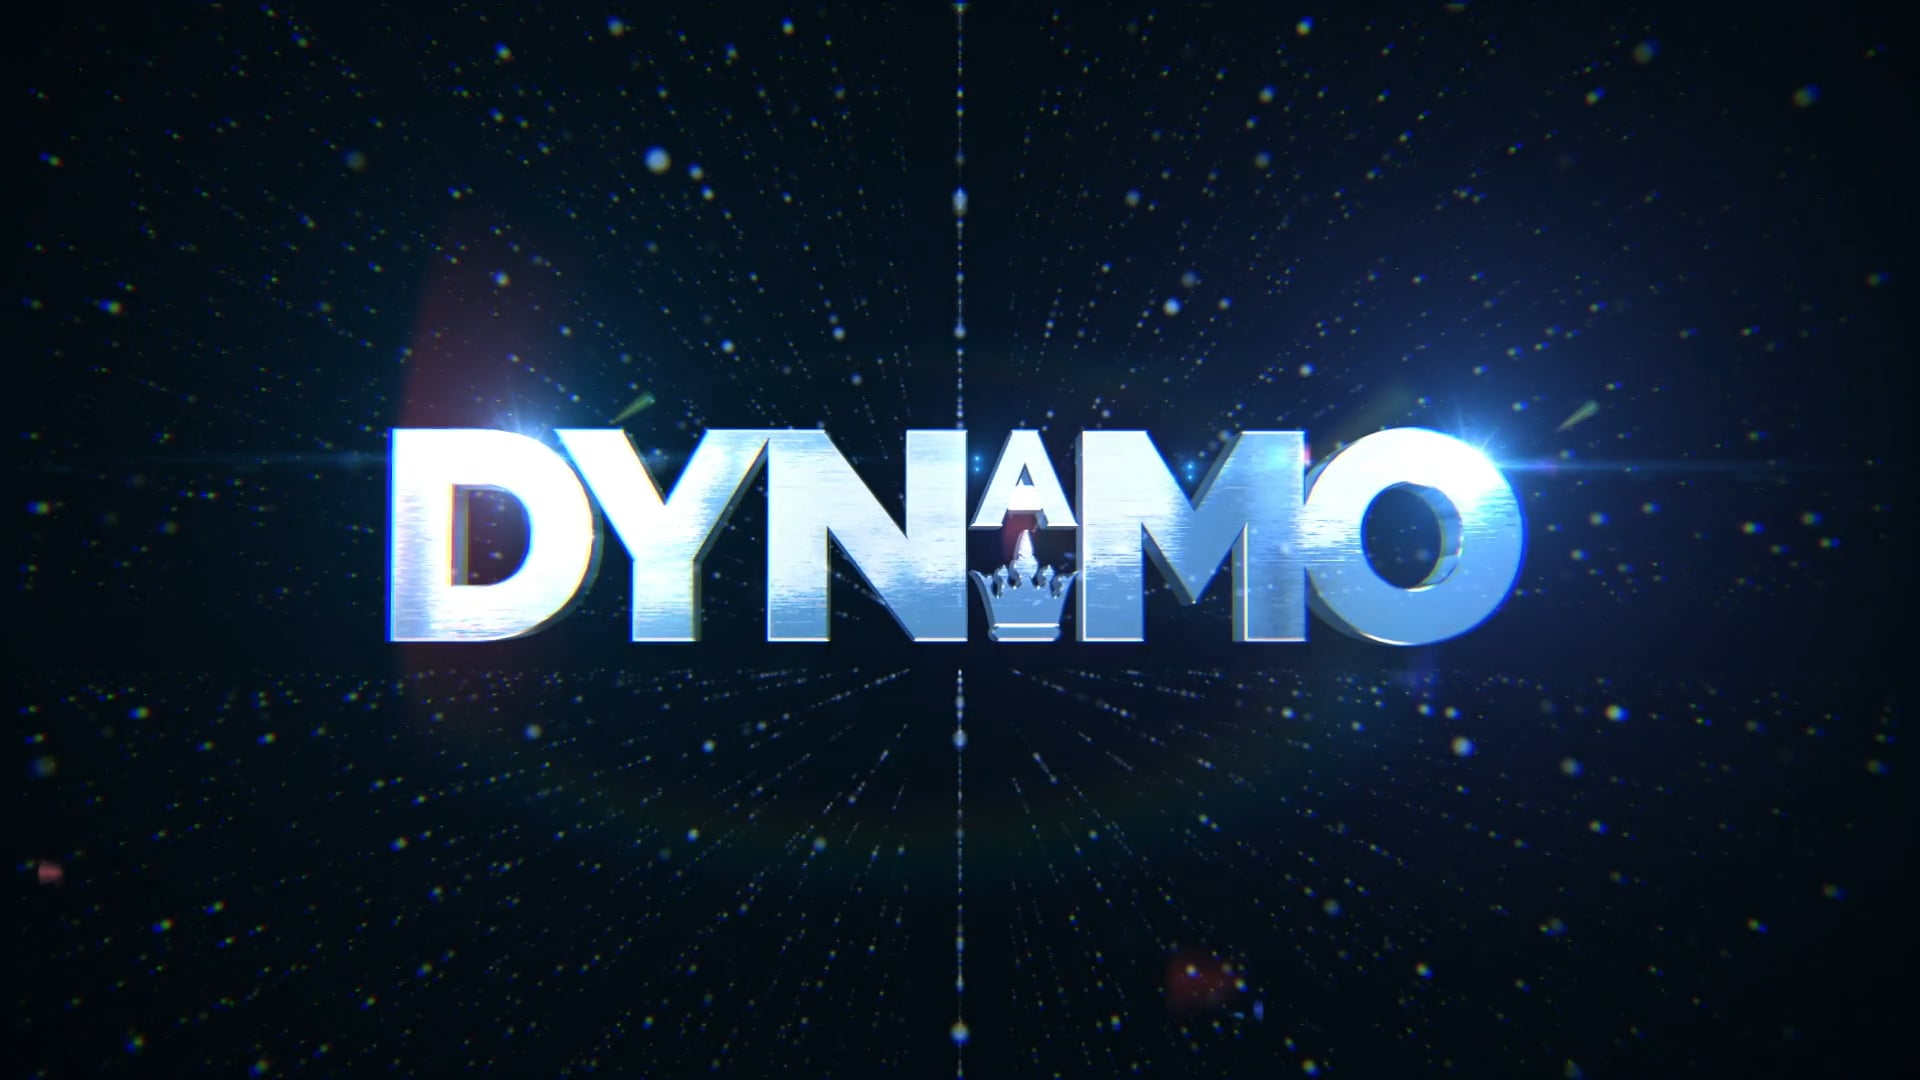 Dynamo: Live at the O2 - Behind The Impossible VT